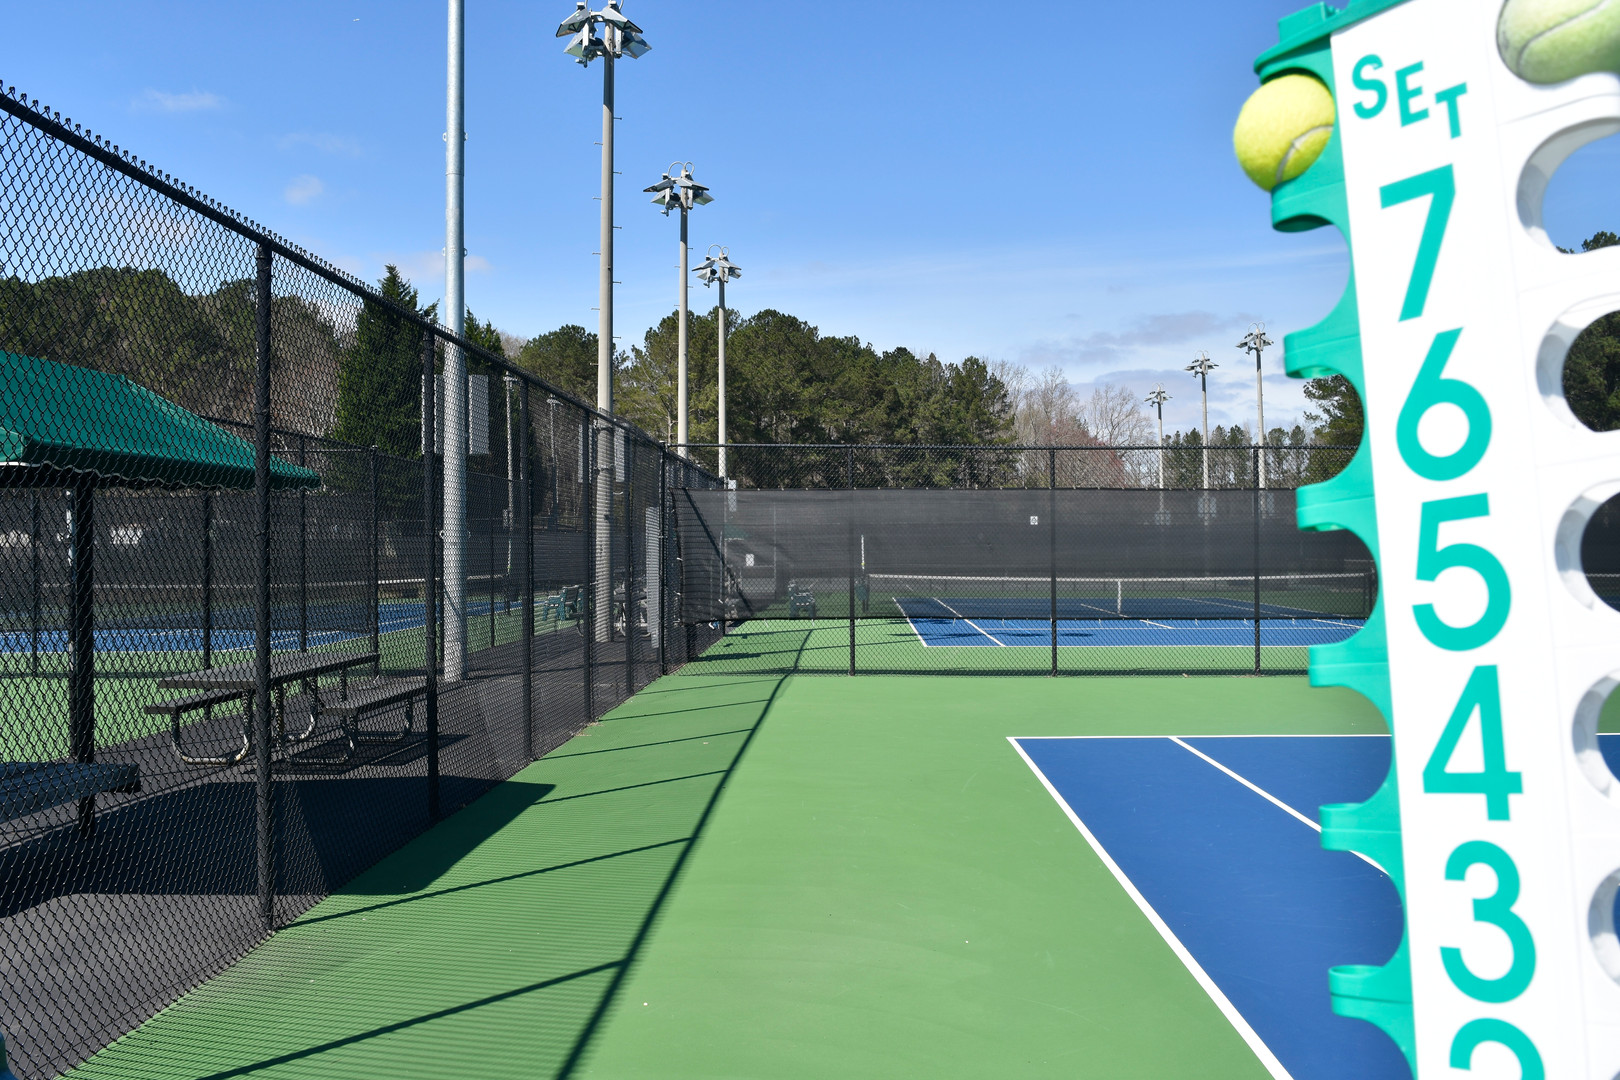 Court 3 at Sugar Creek Golf & Tennis Center